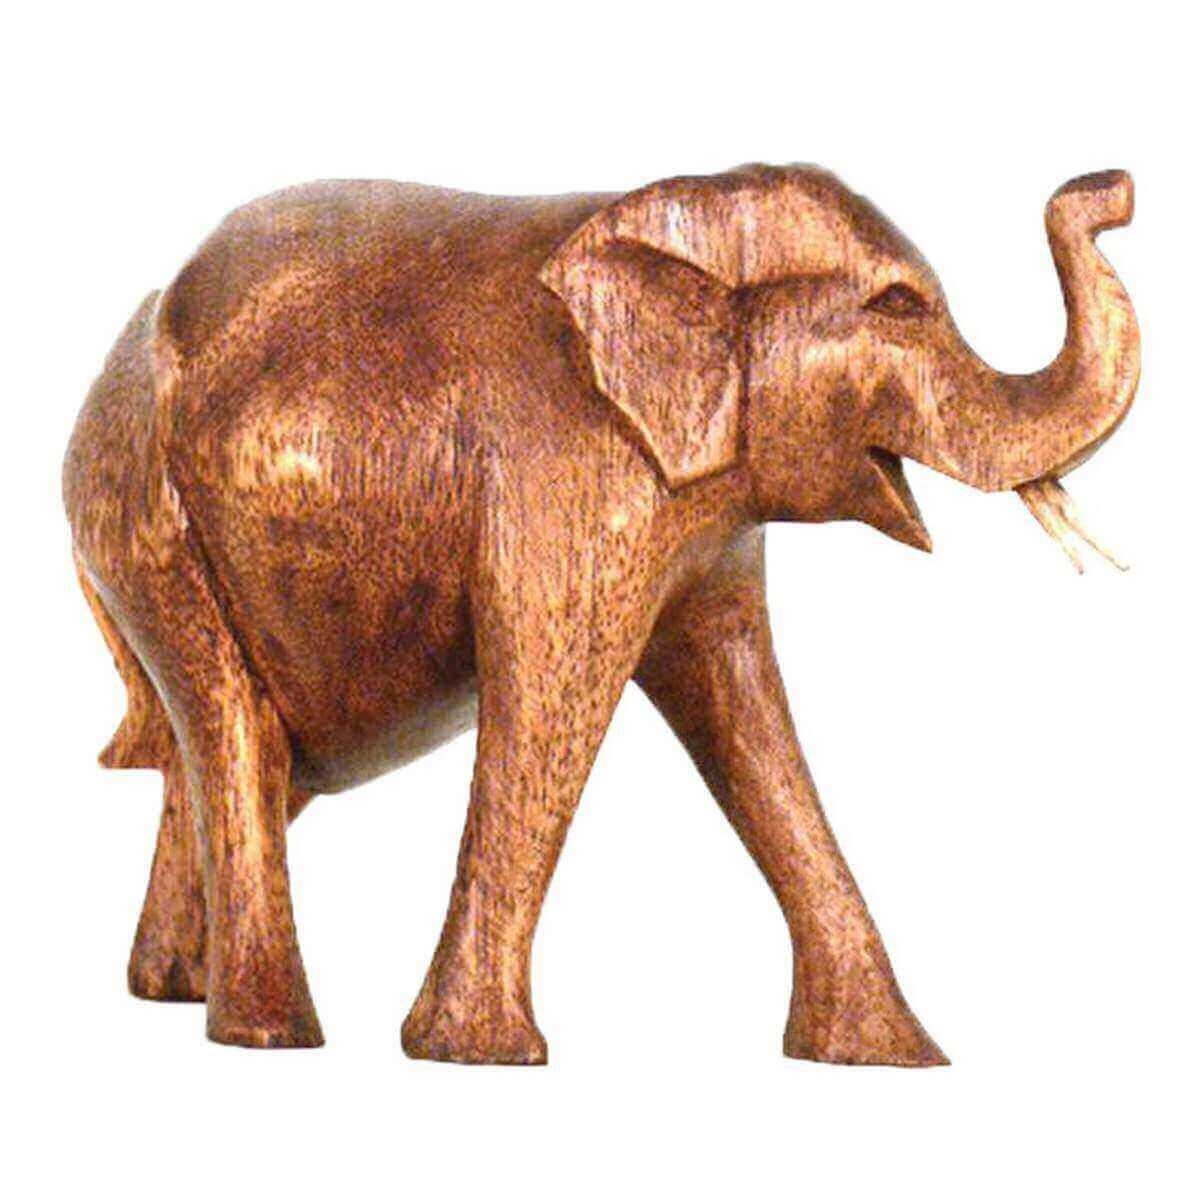 l phant bois statue sculpture abstrait figurine en afrique asie porte bonheur ebay. Black Bedroom Furniture Sets. Home Design Ideas